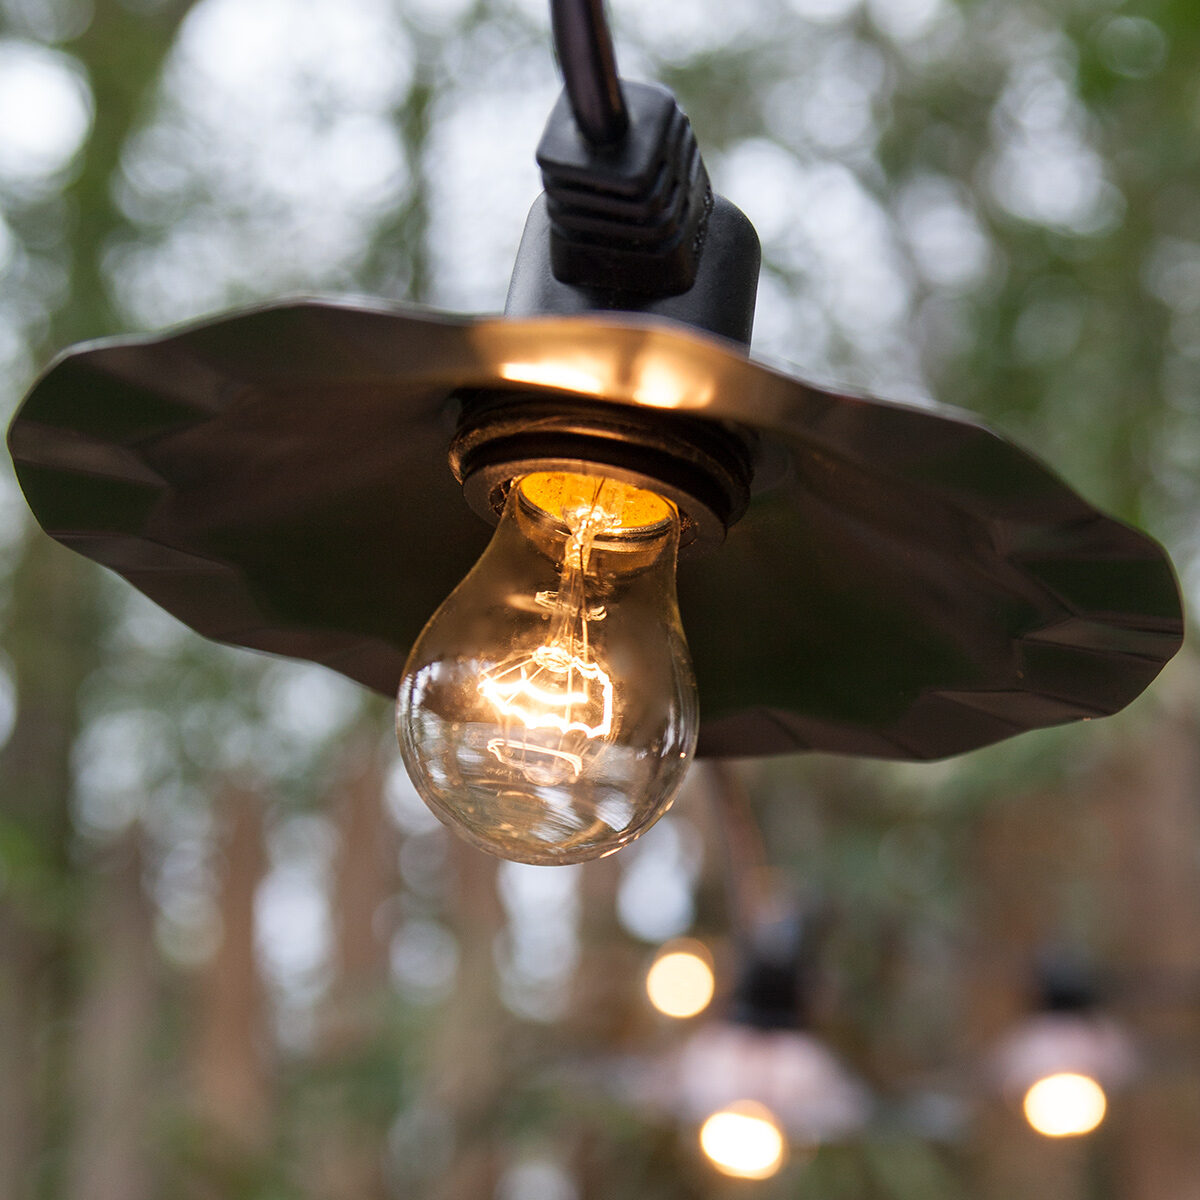 top 3 patio lighting mistakes and how